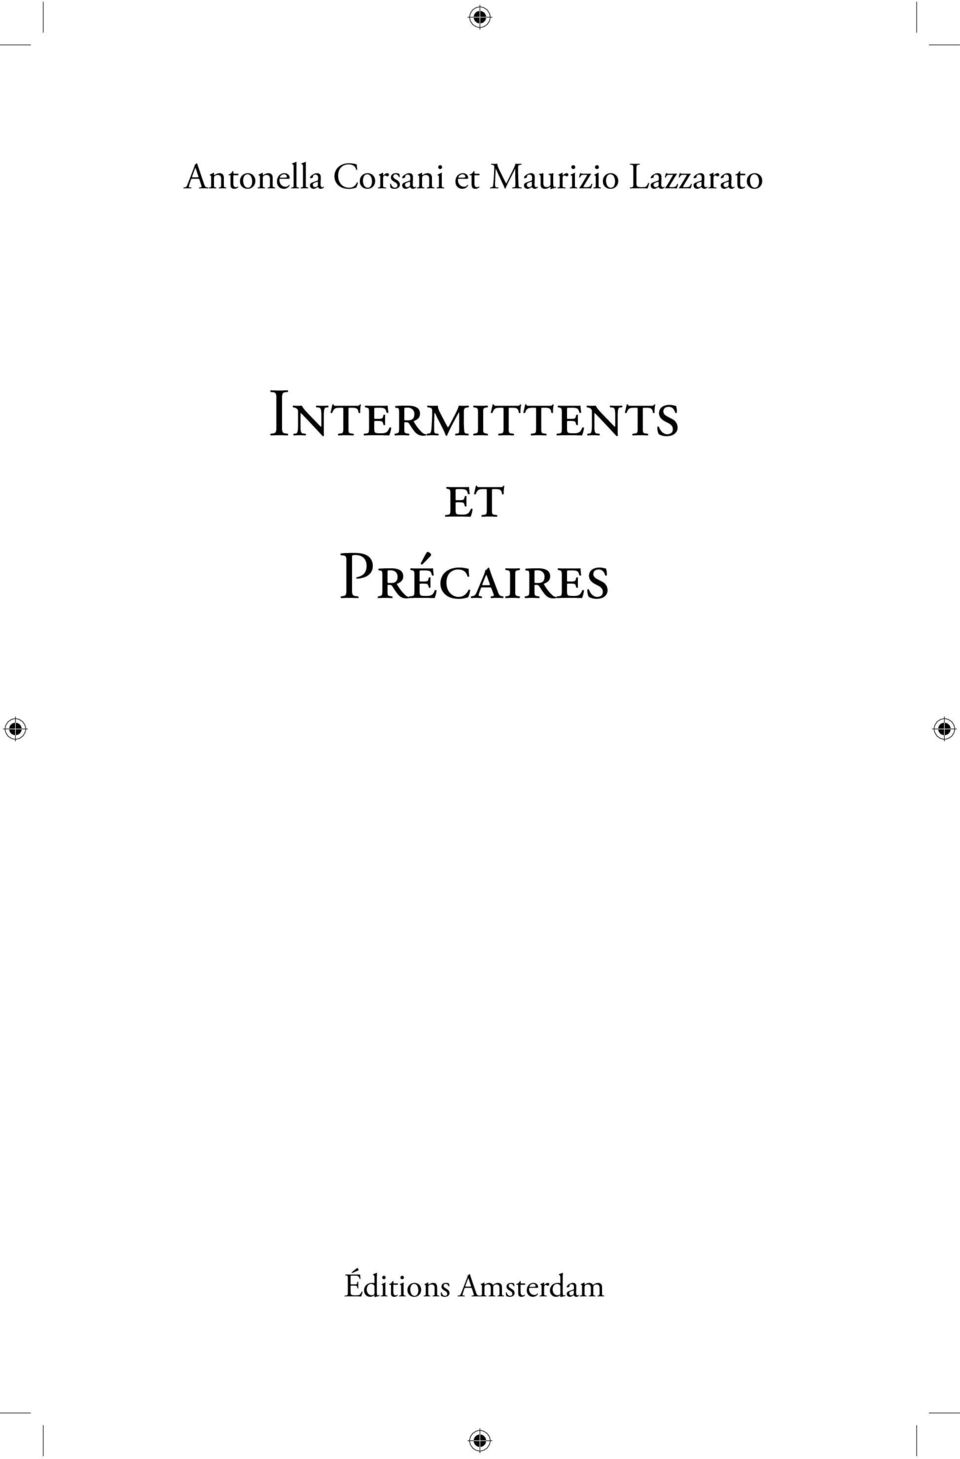 Intermittents et